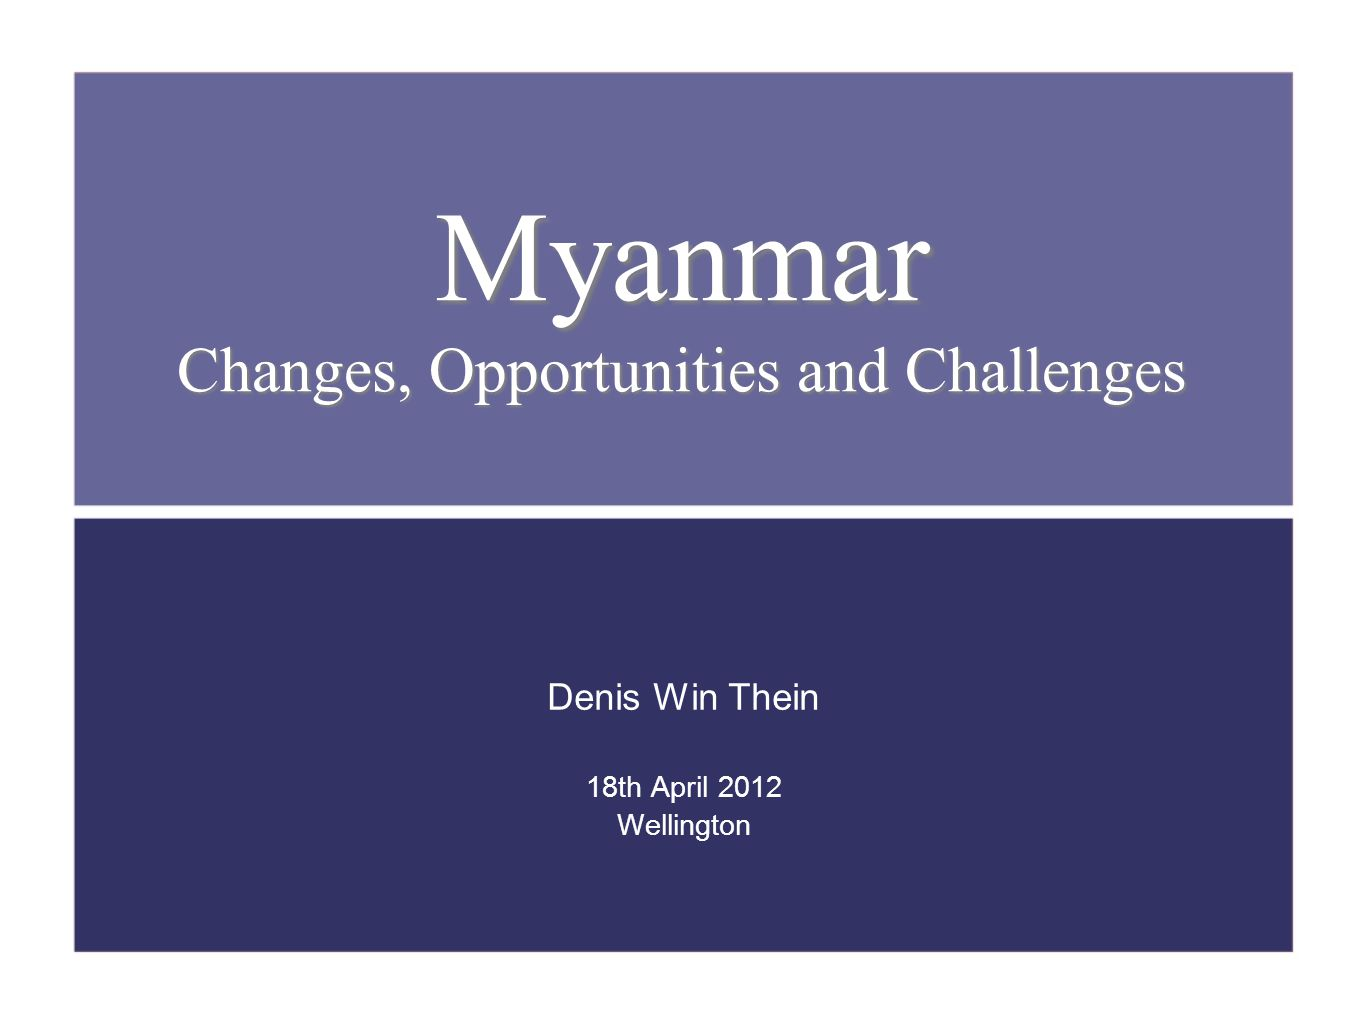 Myanmar Population 58m 85% Buddhist 135 Races and Ethnic groups Area 678,500 square kms (2.5 times of NZ) Largest in mainland SE Asia GDP( PPP ) US$90b Borders with China, India, Laos, Thailand and Bangladesh